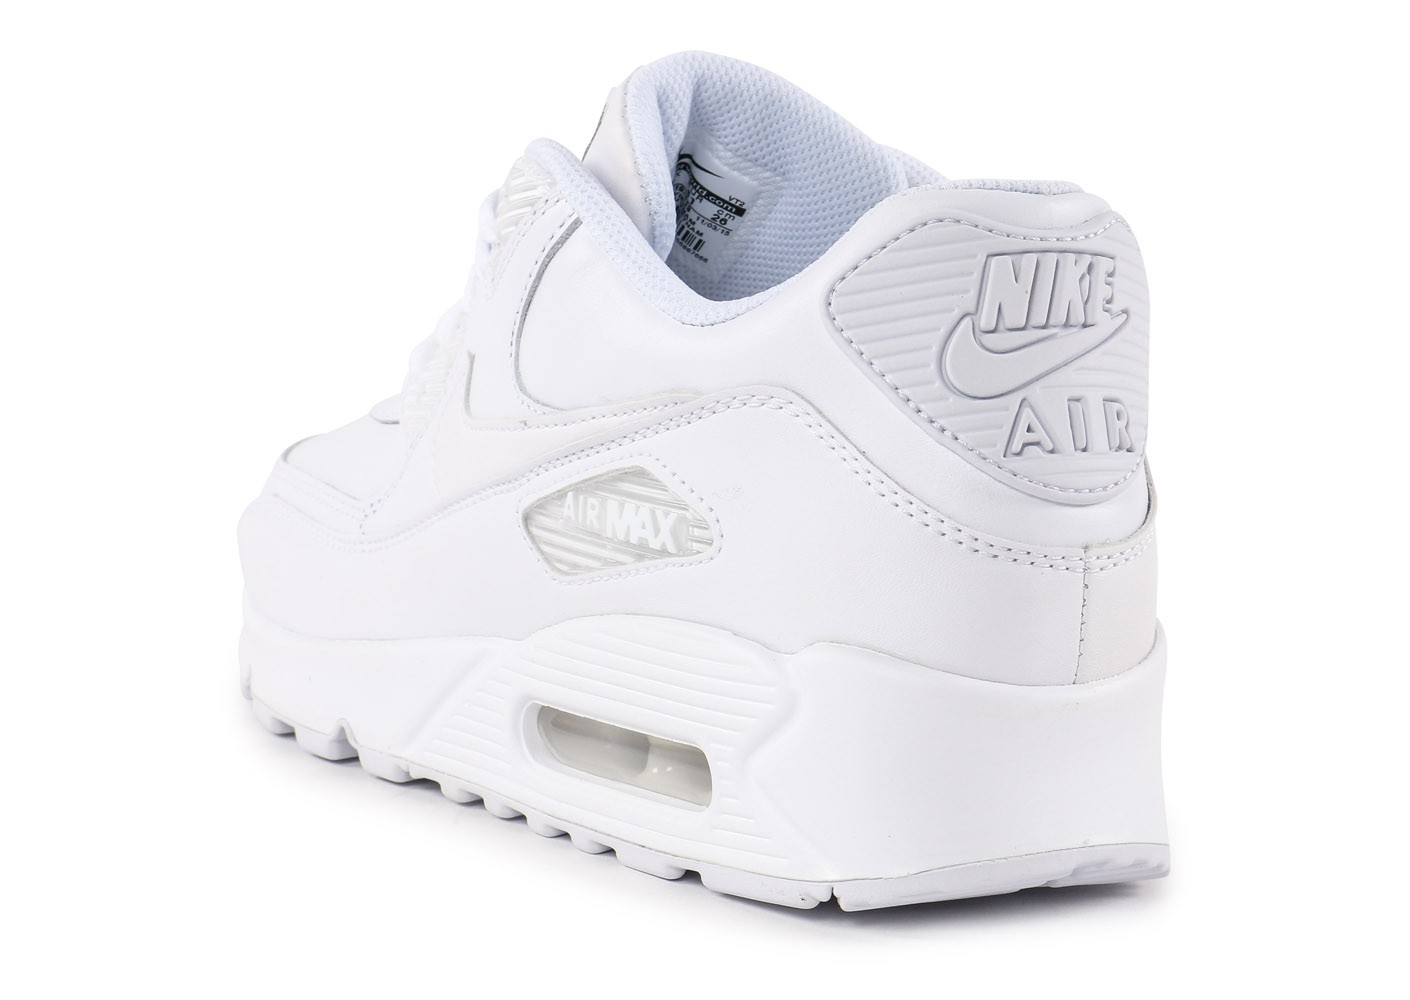 Nike Air Max 90 Leather Blanche - Chaussures Baskets homme - Chausport